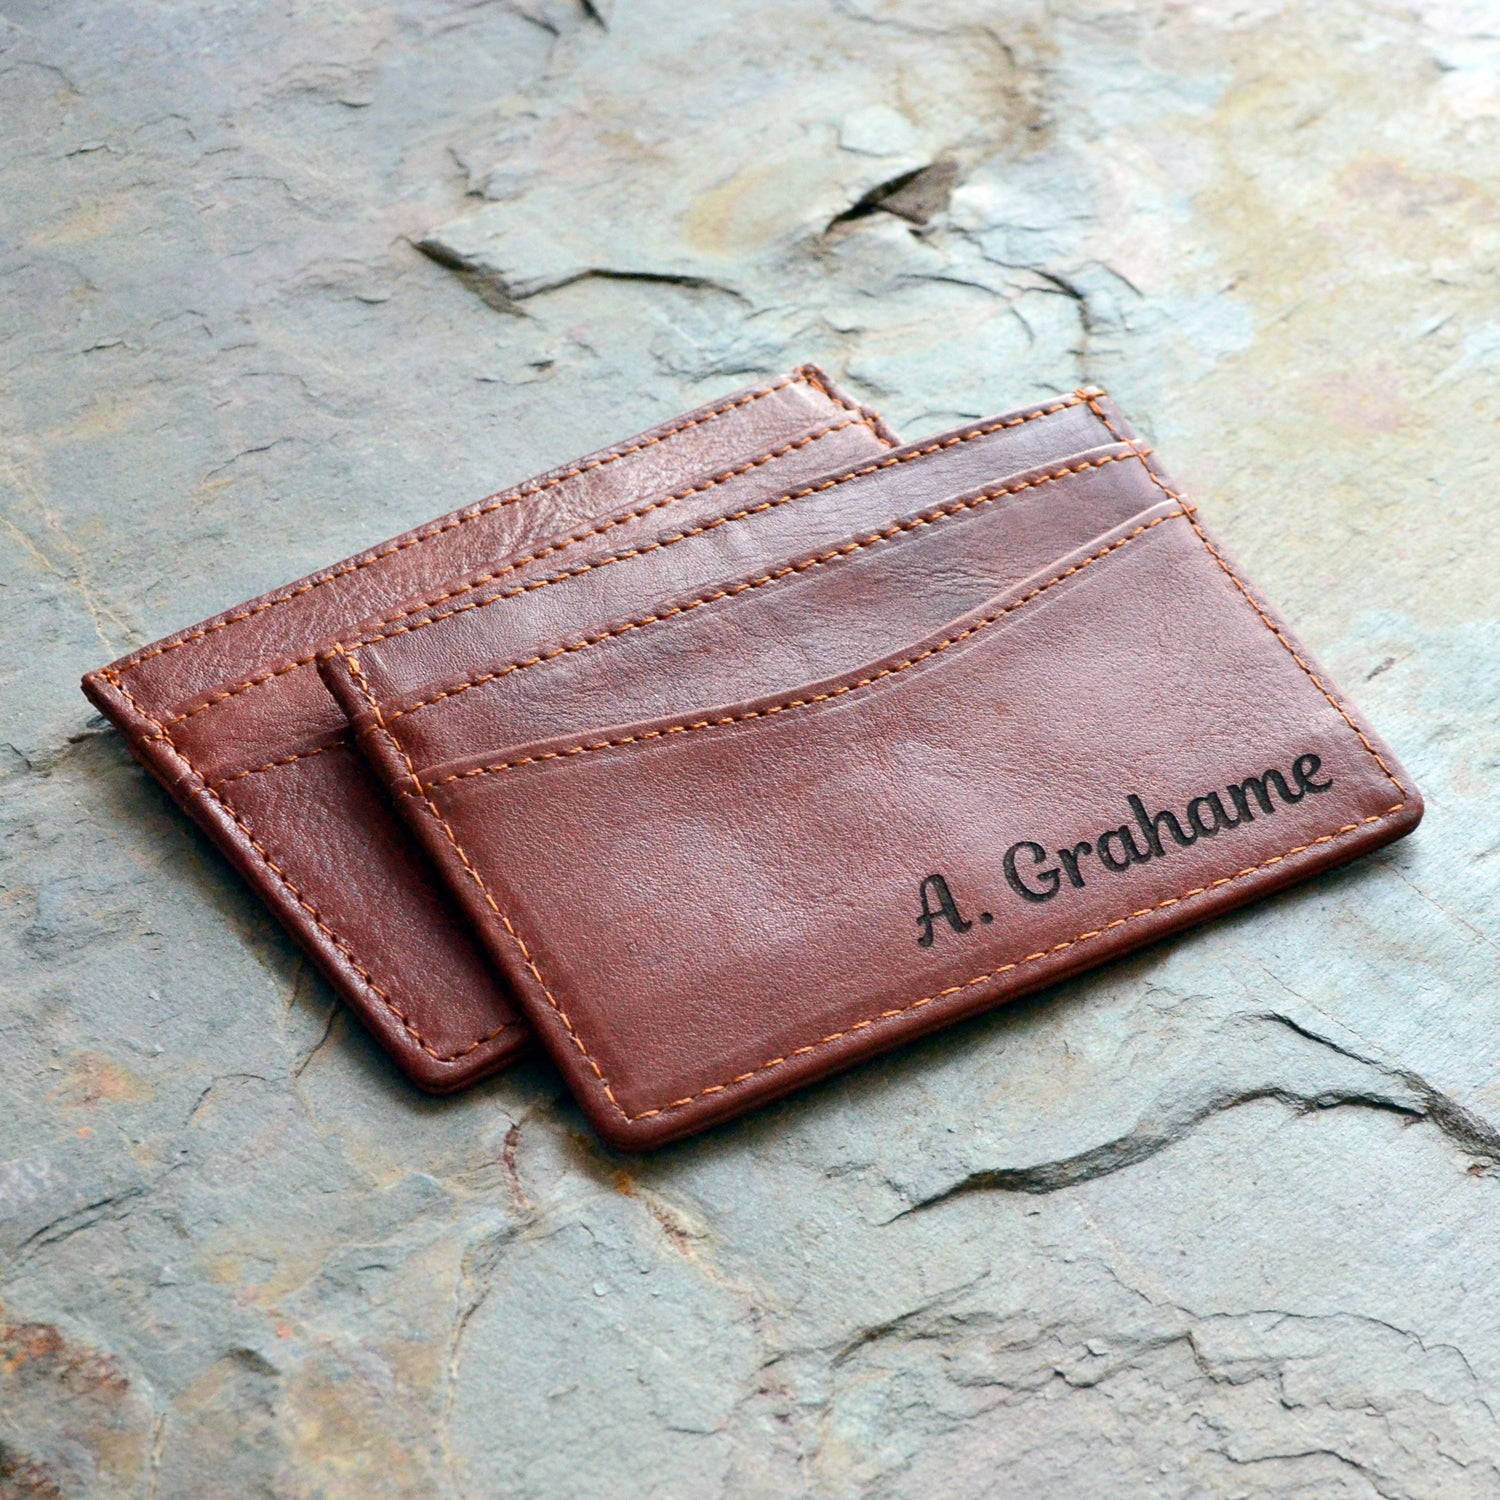 Personalized Name Leather Thin Card Holder Wallet Case Monogram Name Hand Stitched by Harlex Gift for Him Christmas Gift Thanksgiving Gift